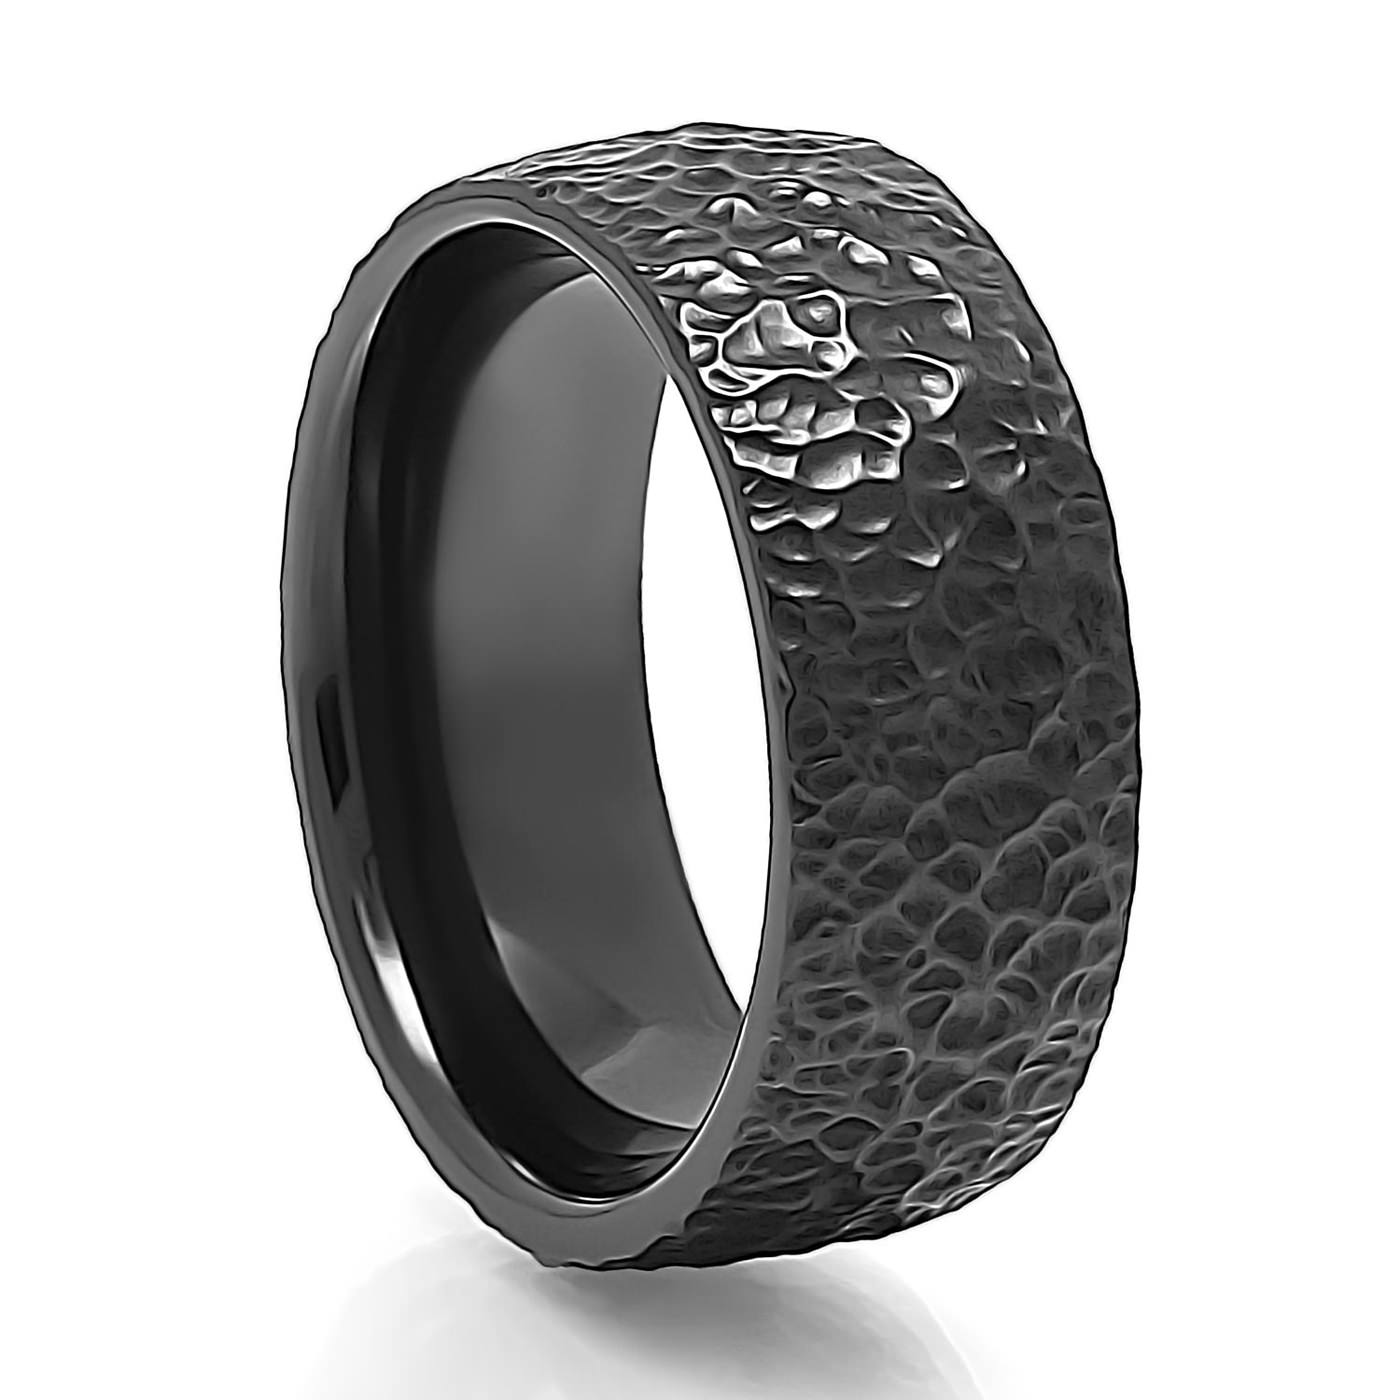 mens zaboda textured black zirconium ring by jr yates - Black Wedding Rings For Men